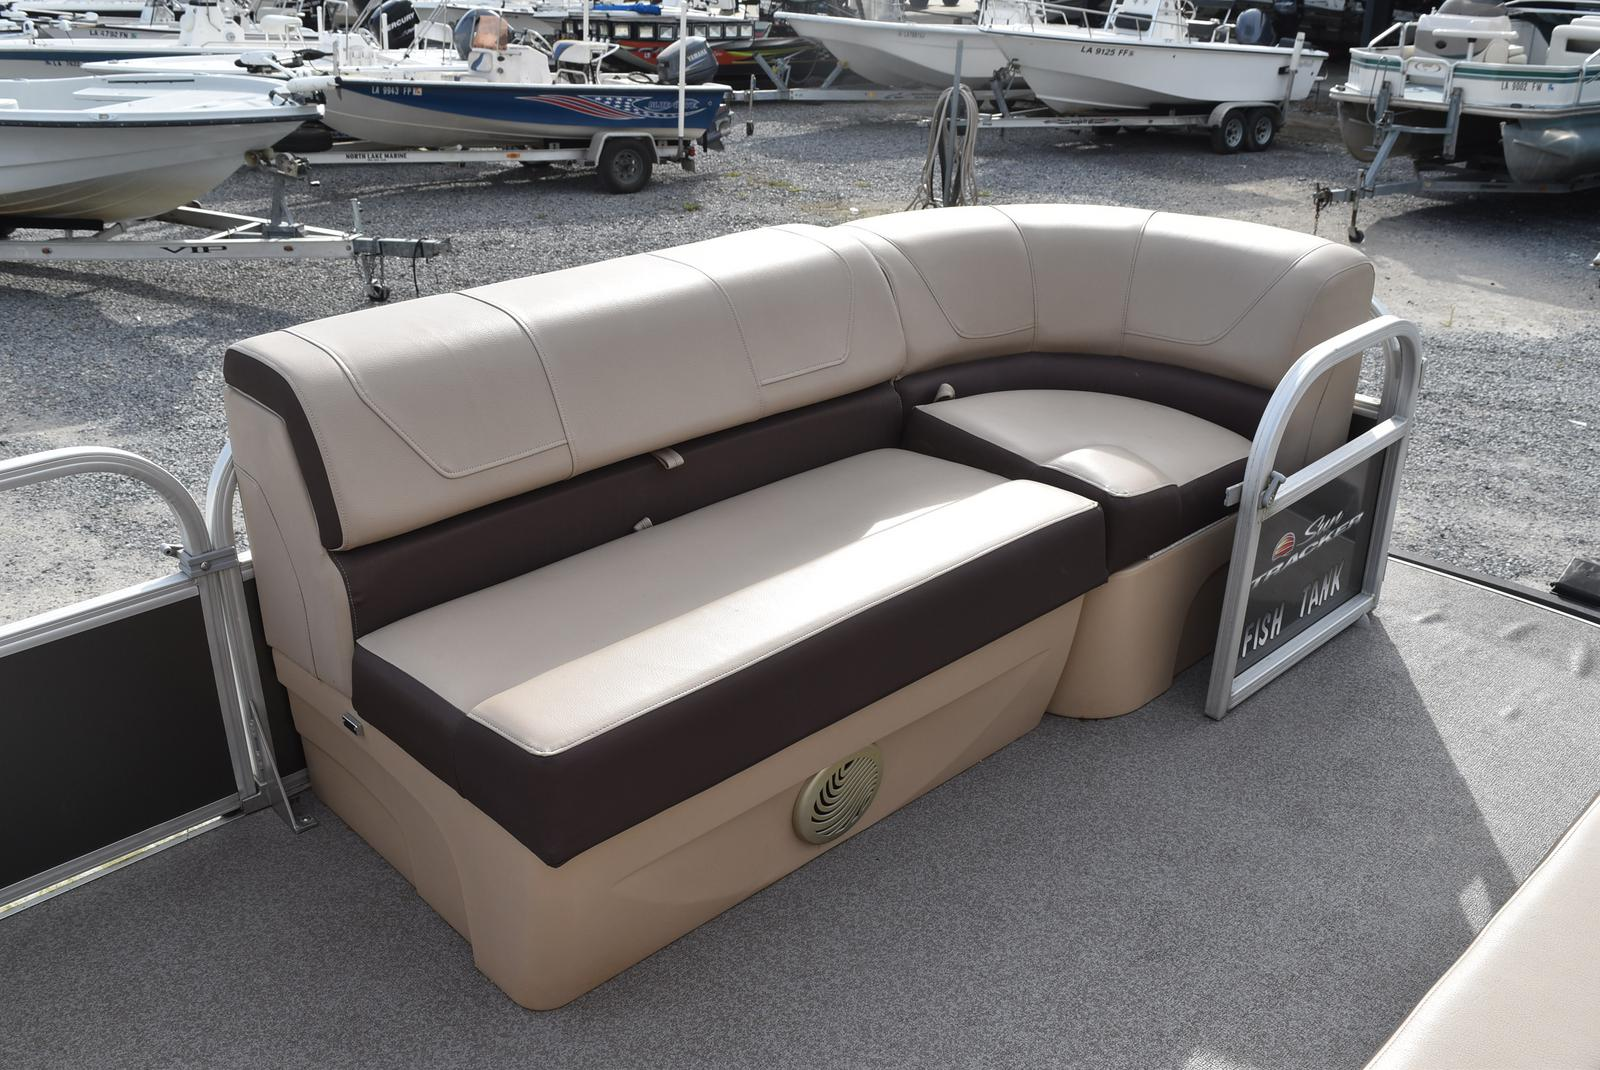 2018 Sun Tracker boat for sale, model of the boat is Party Barge 20 DLX, 90CT & Image # 13 of 14